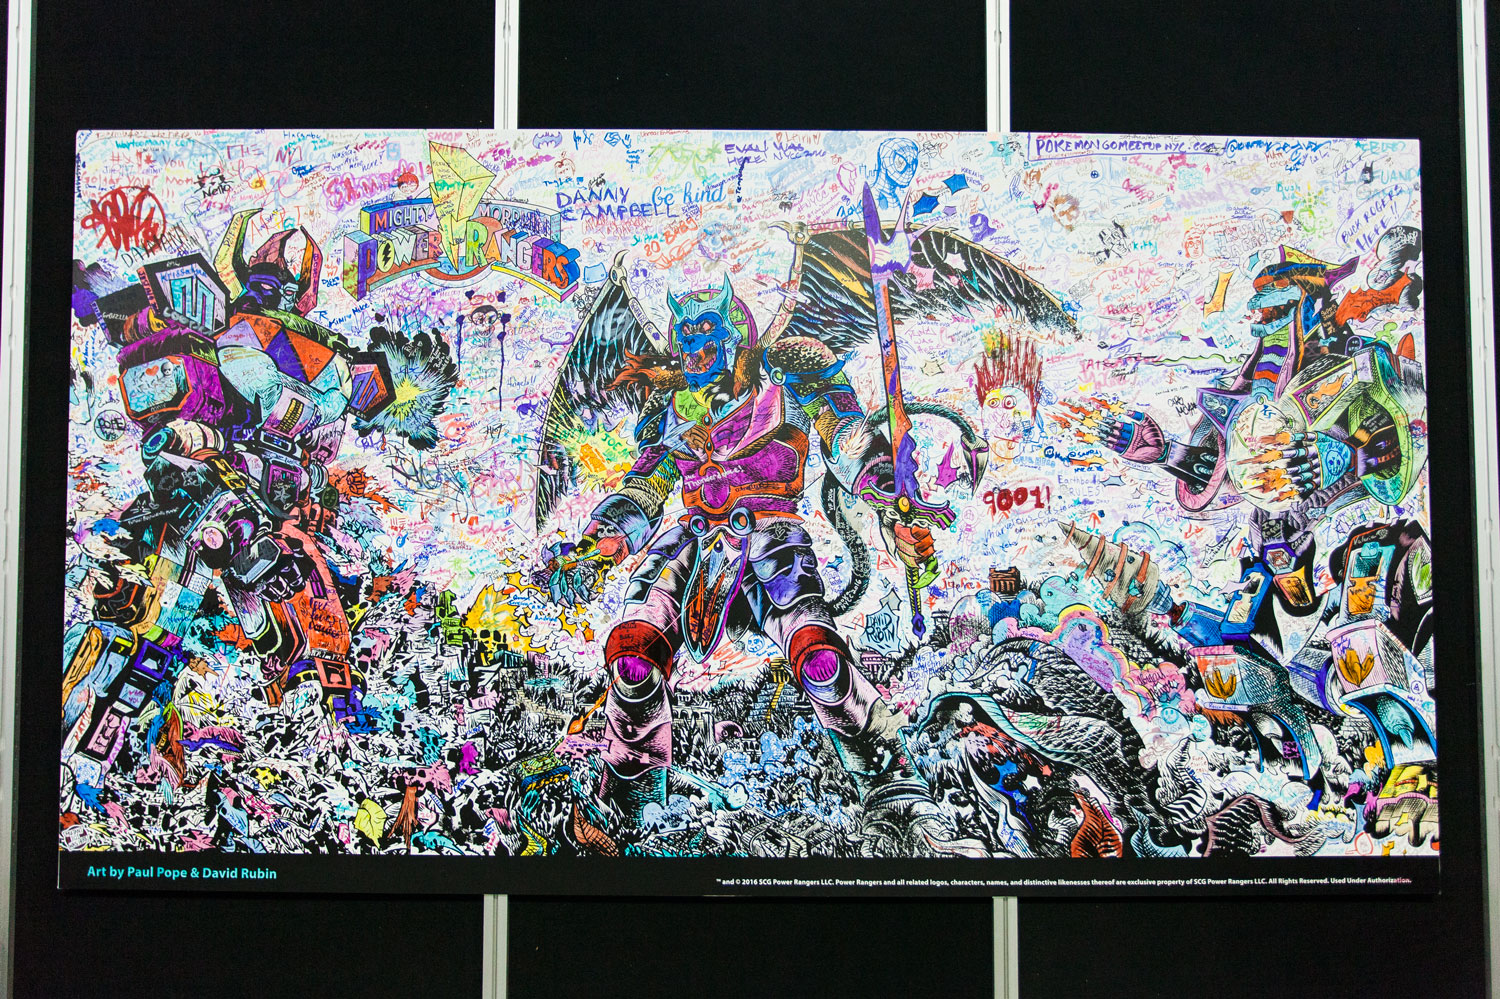 NYCC Artist Alley Mural